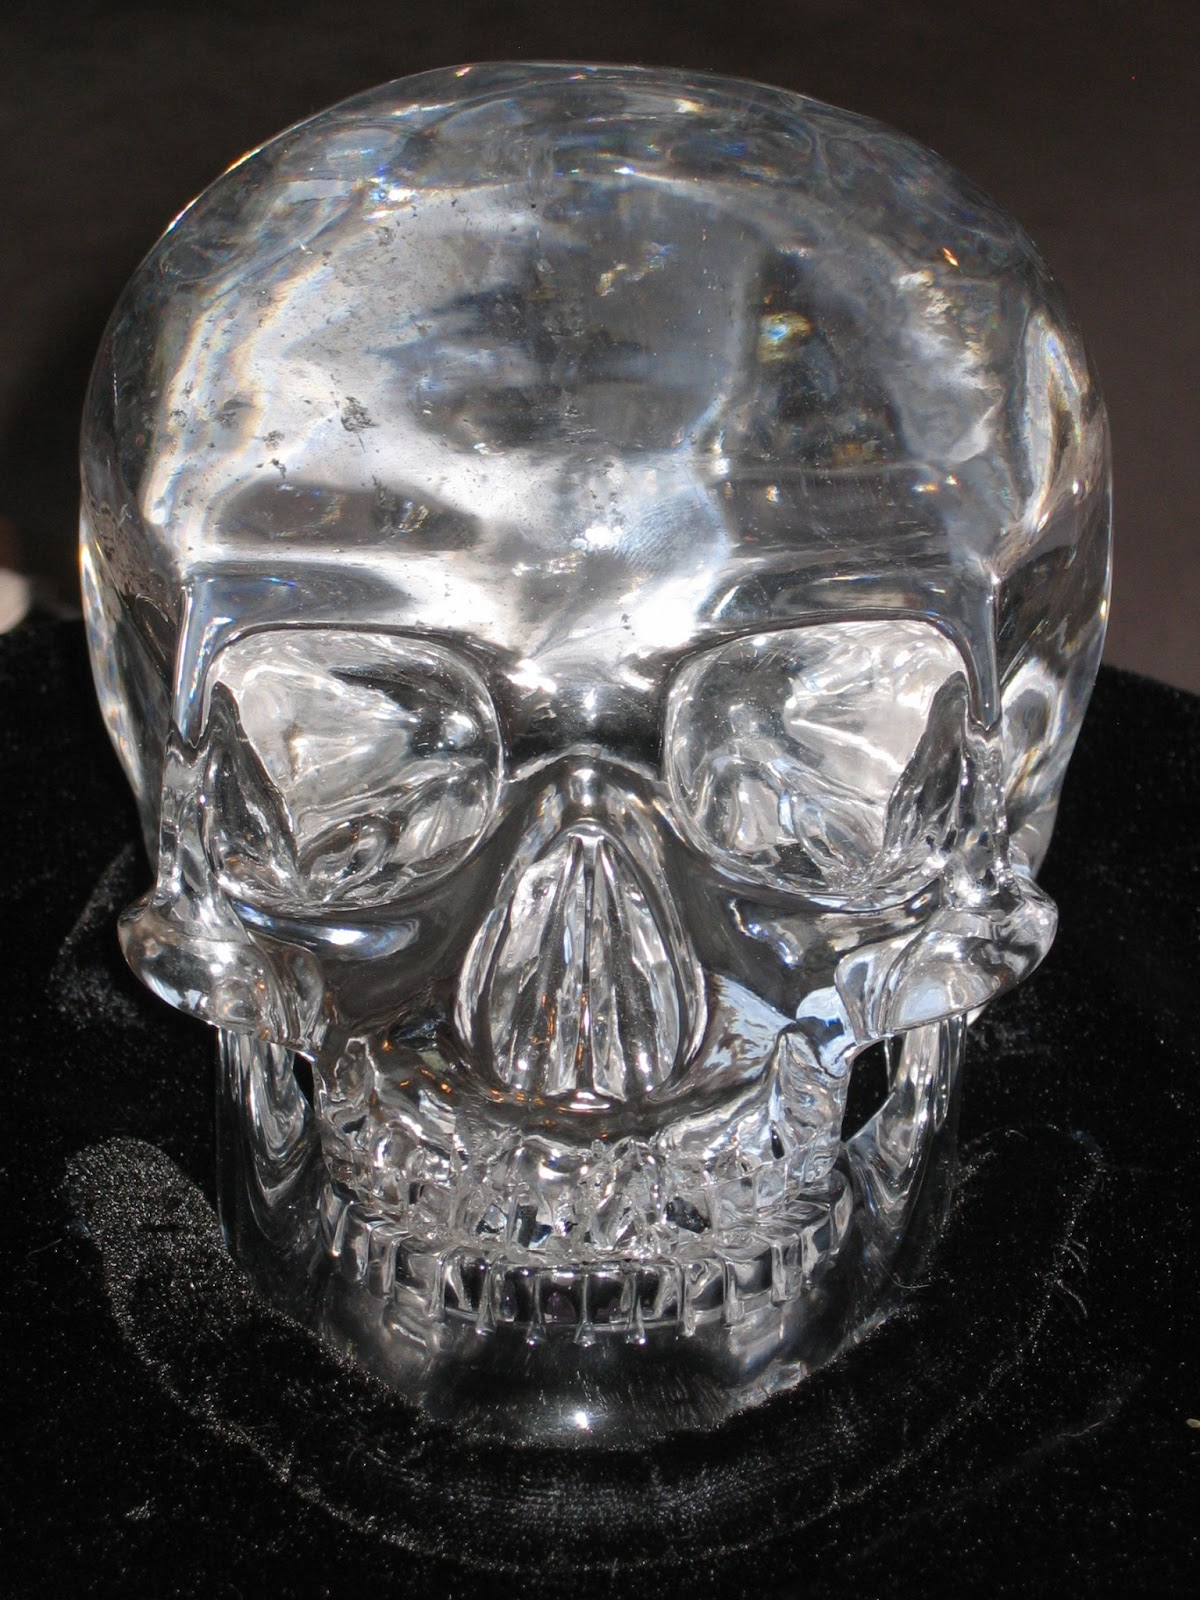 Mitchel_Hedges_Crystal_Skull.jpg